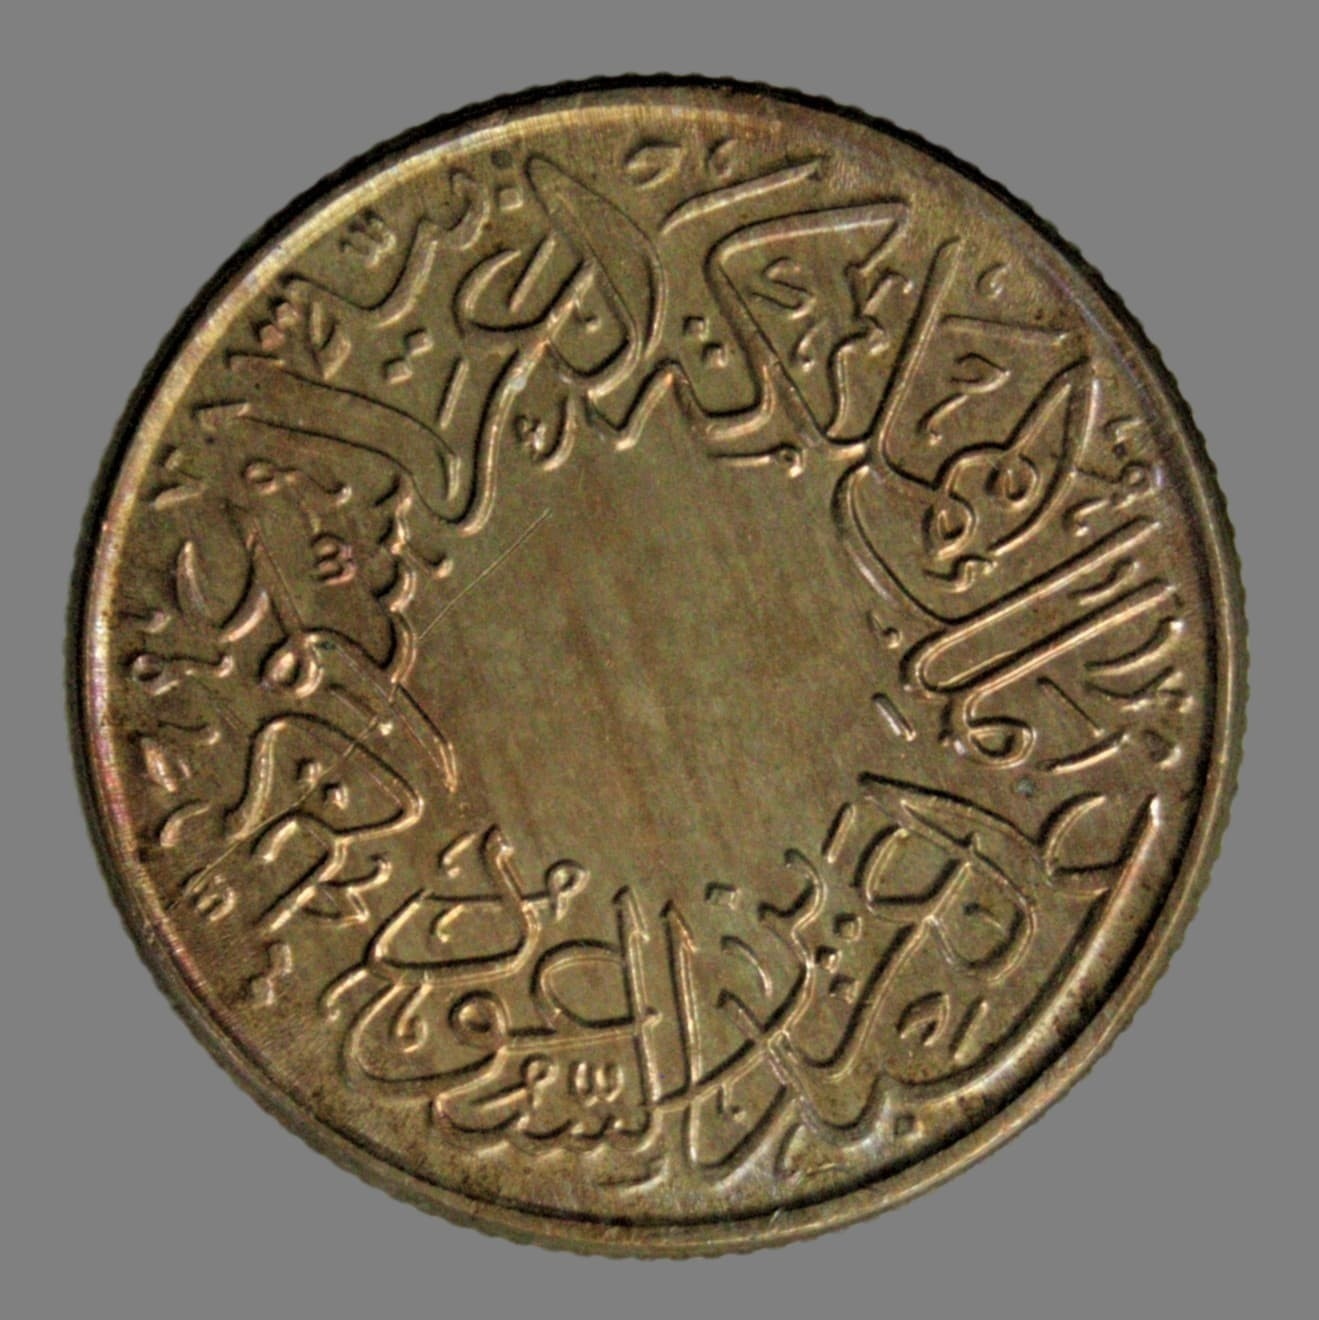 Saudi Arabia, ½ ghirsh 1937